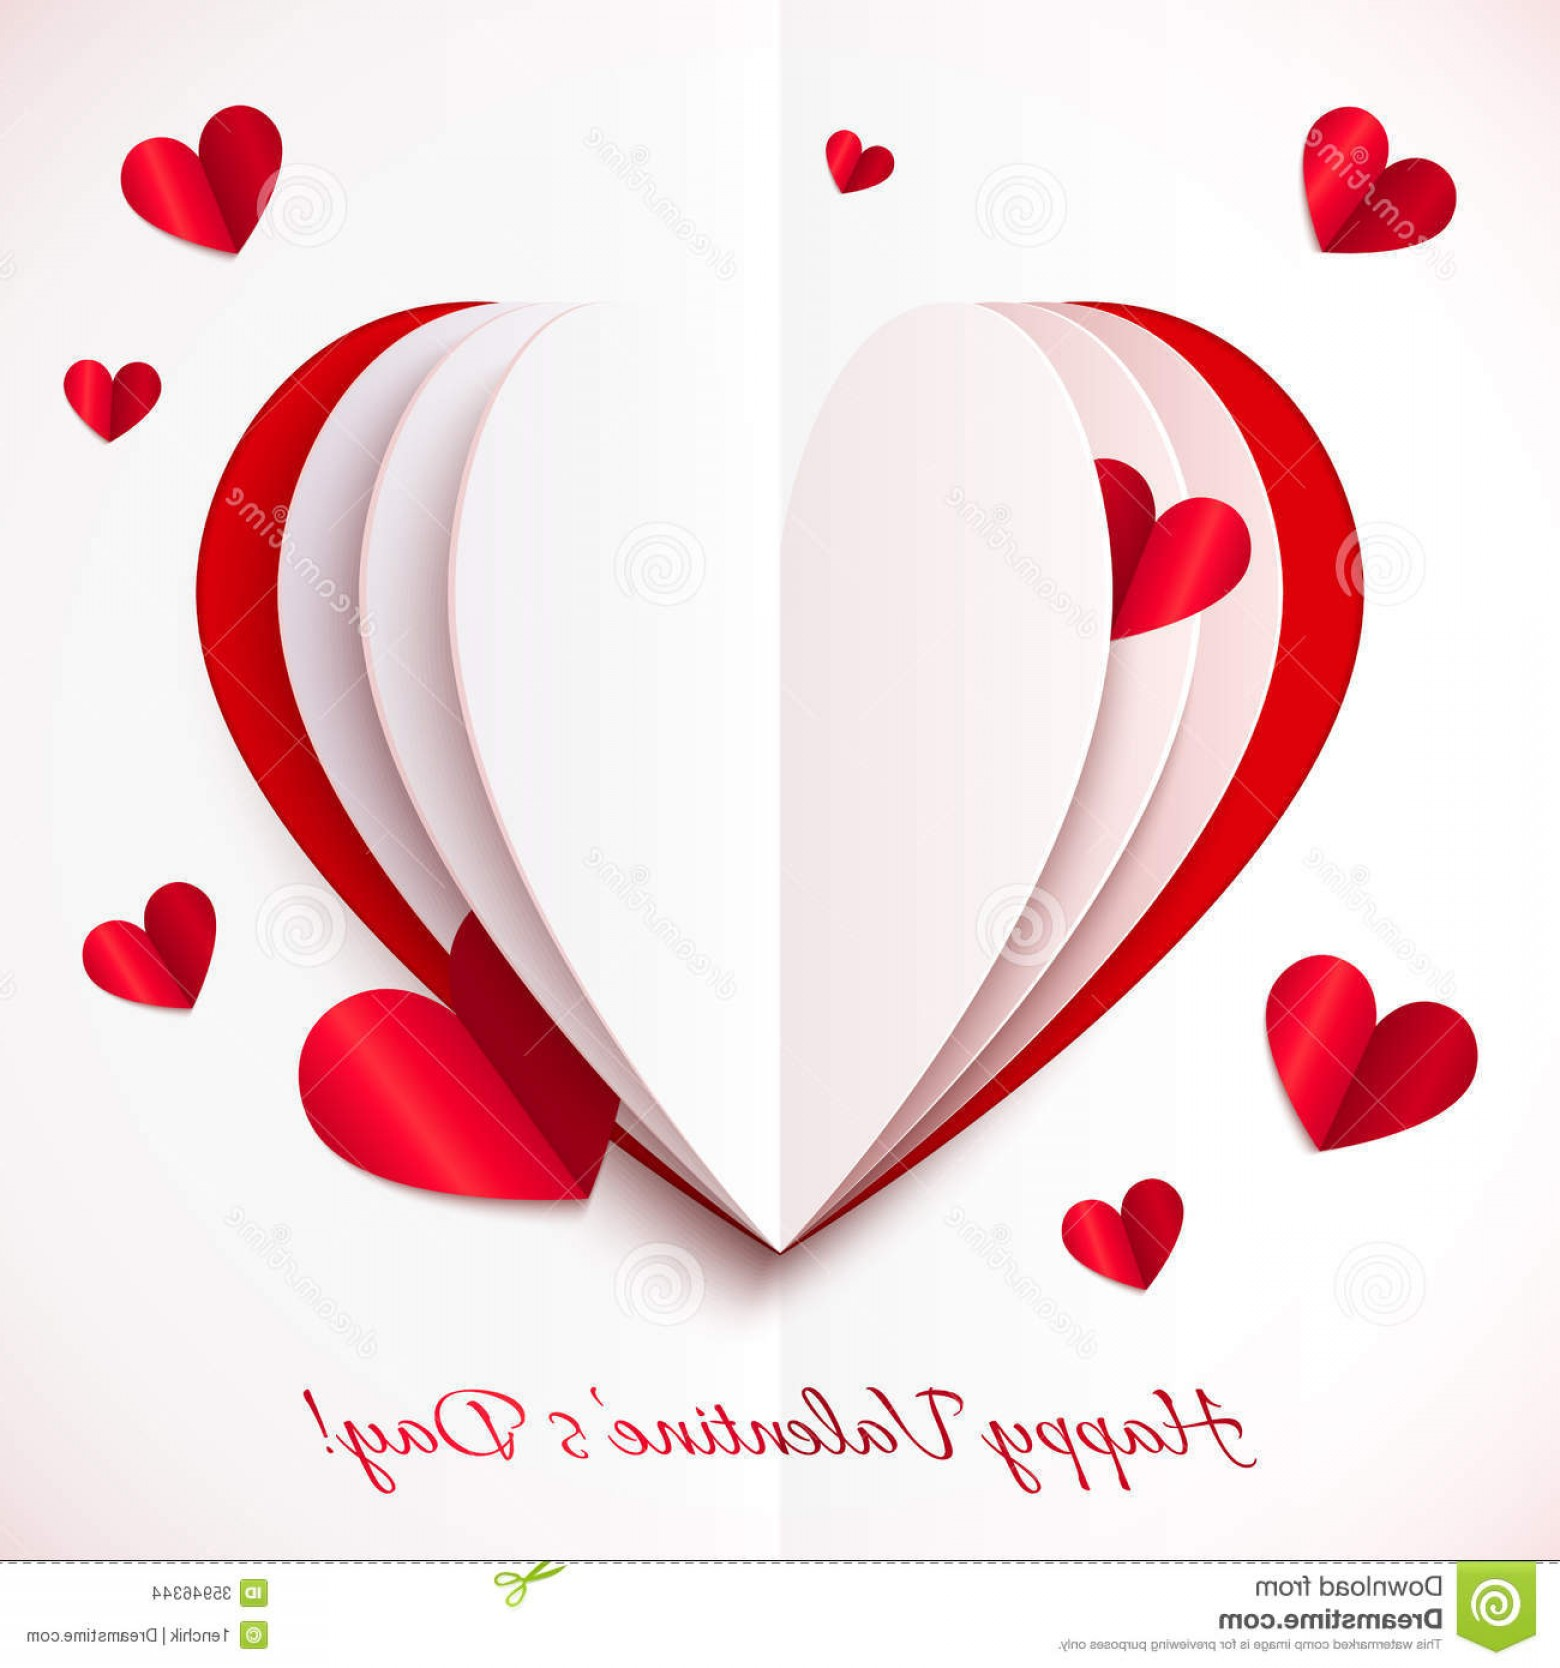 Heart Card Vector: Stock Images Red White Cutout Paper Vector Heart Greeting Card Template Image